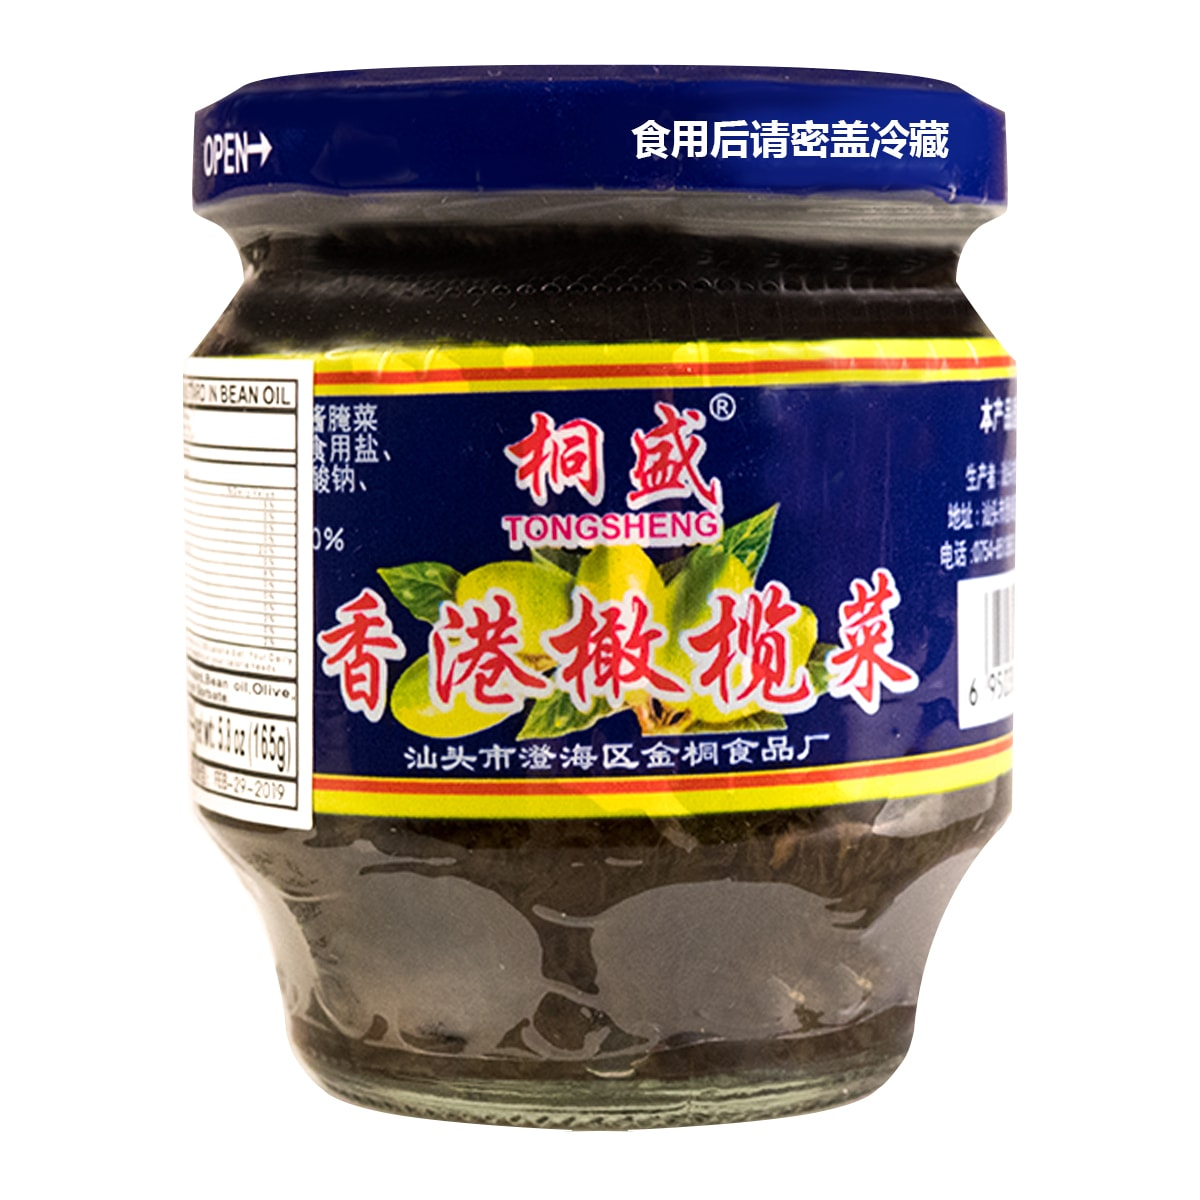 TONGSHENG Preserved Mustard In Brine 165g